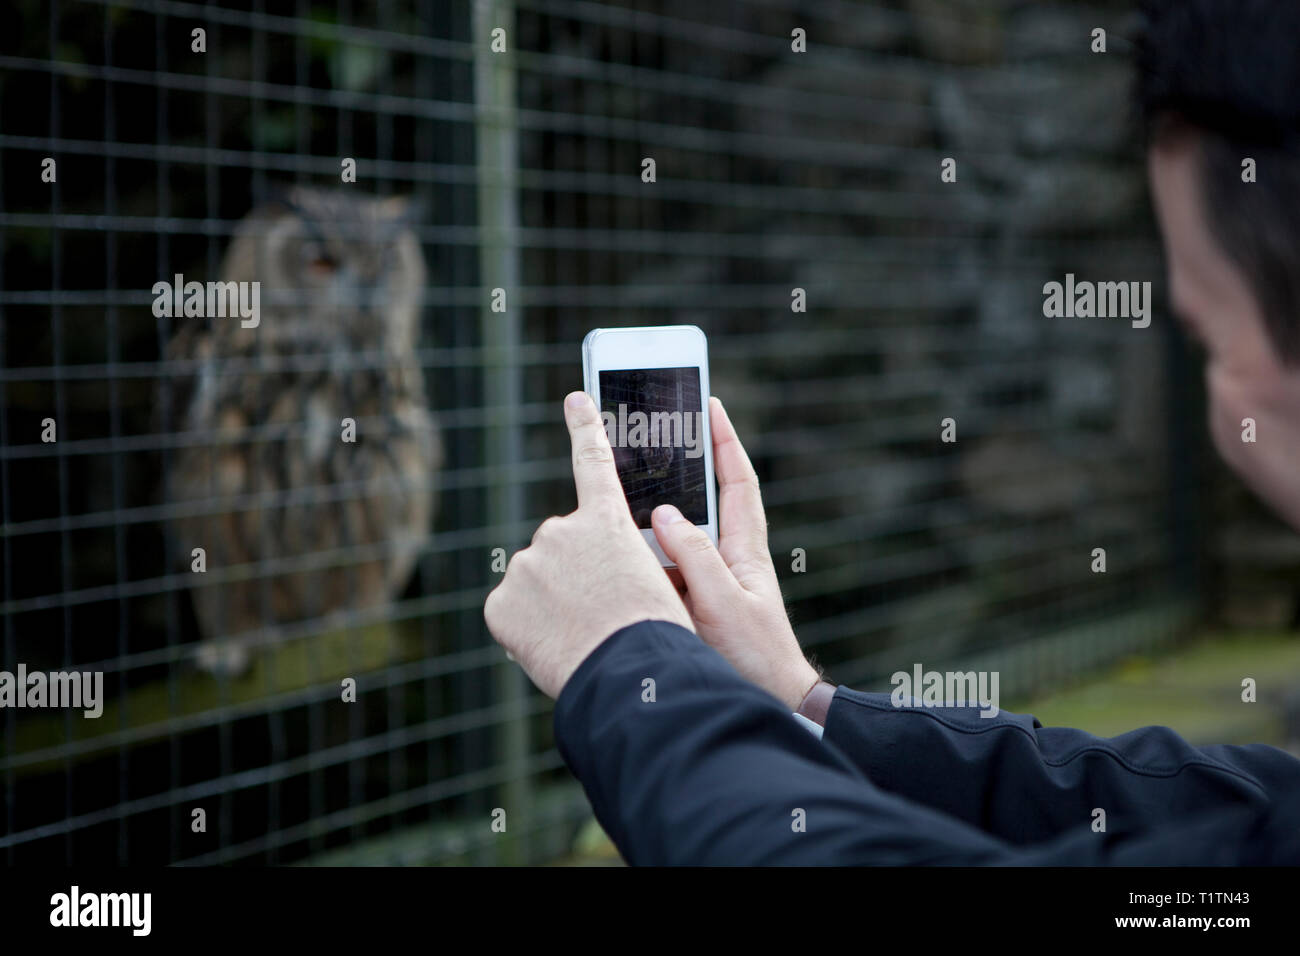 Man taking a photo on a mobile phone of an owl in captivity at a falconry centre - Stock Image